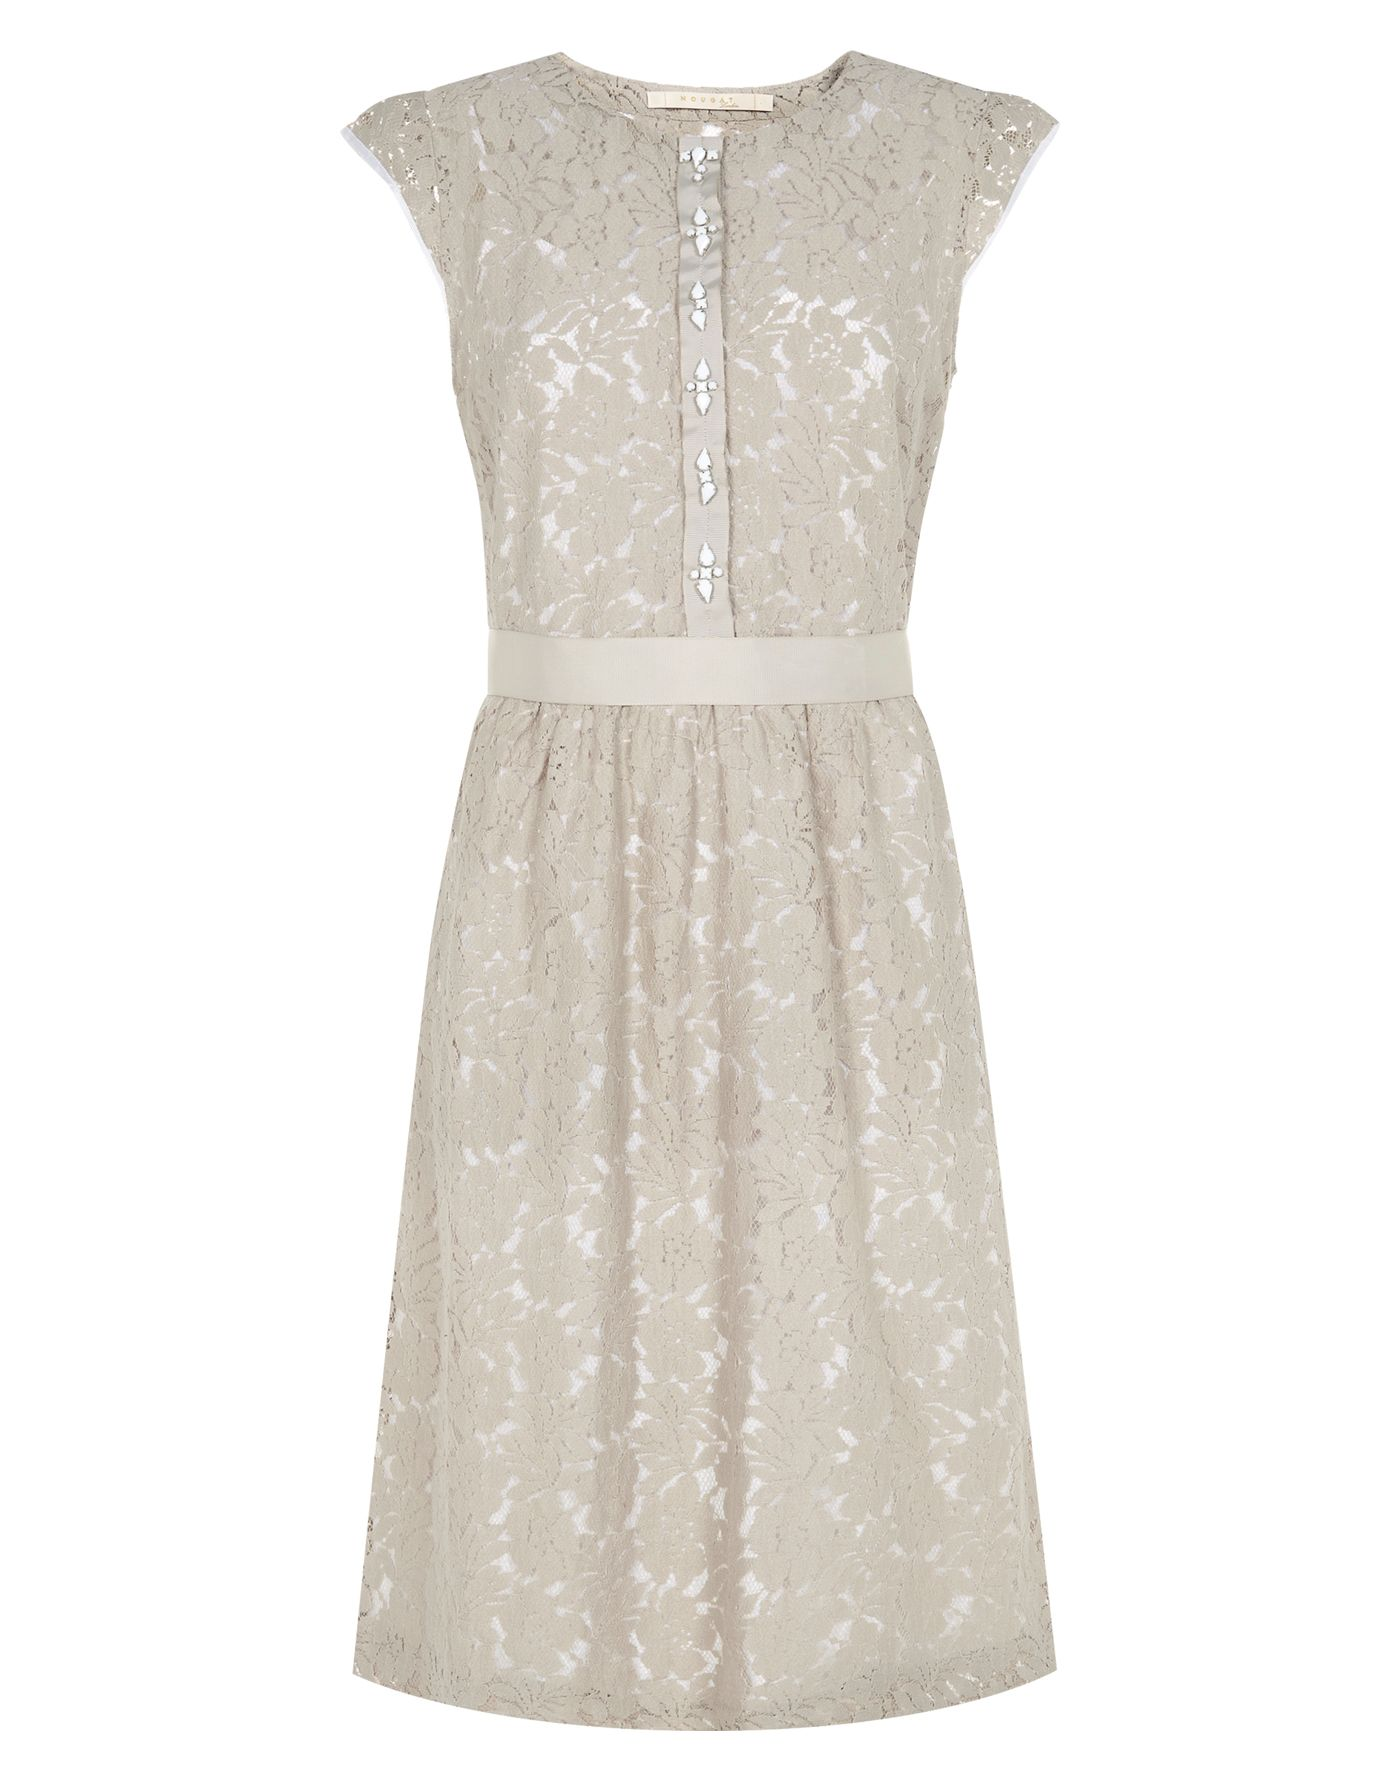 Grosgrain belted lace dress